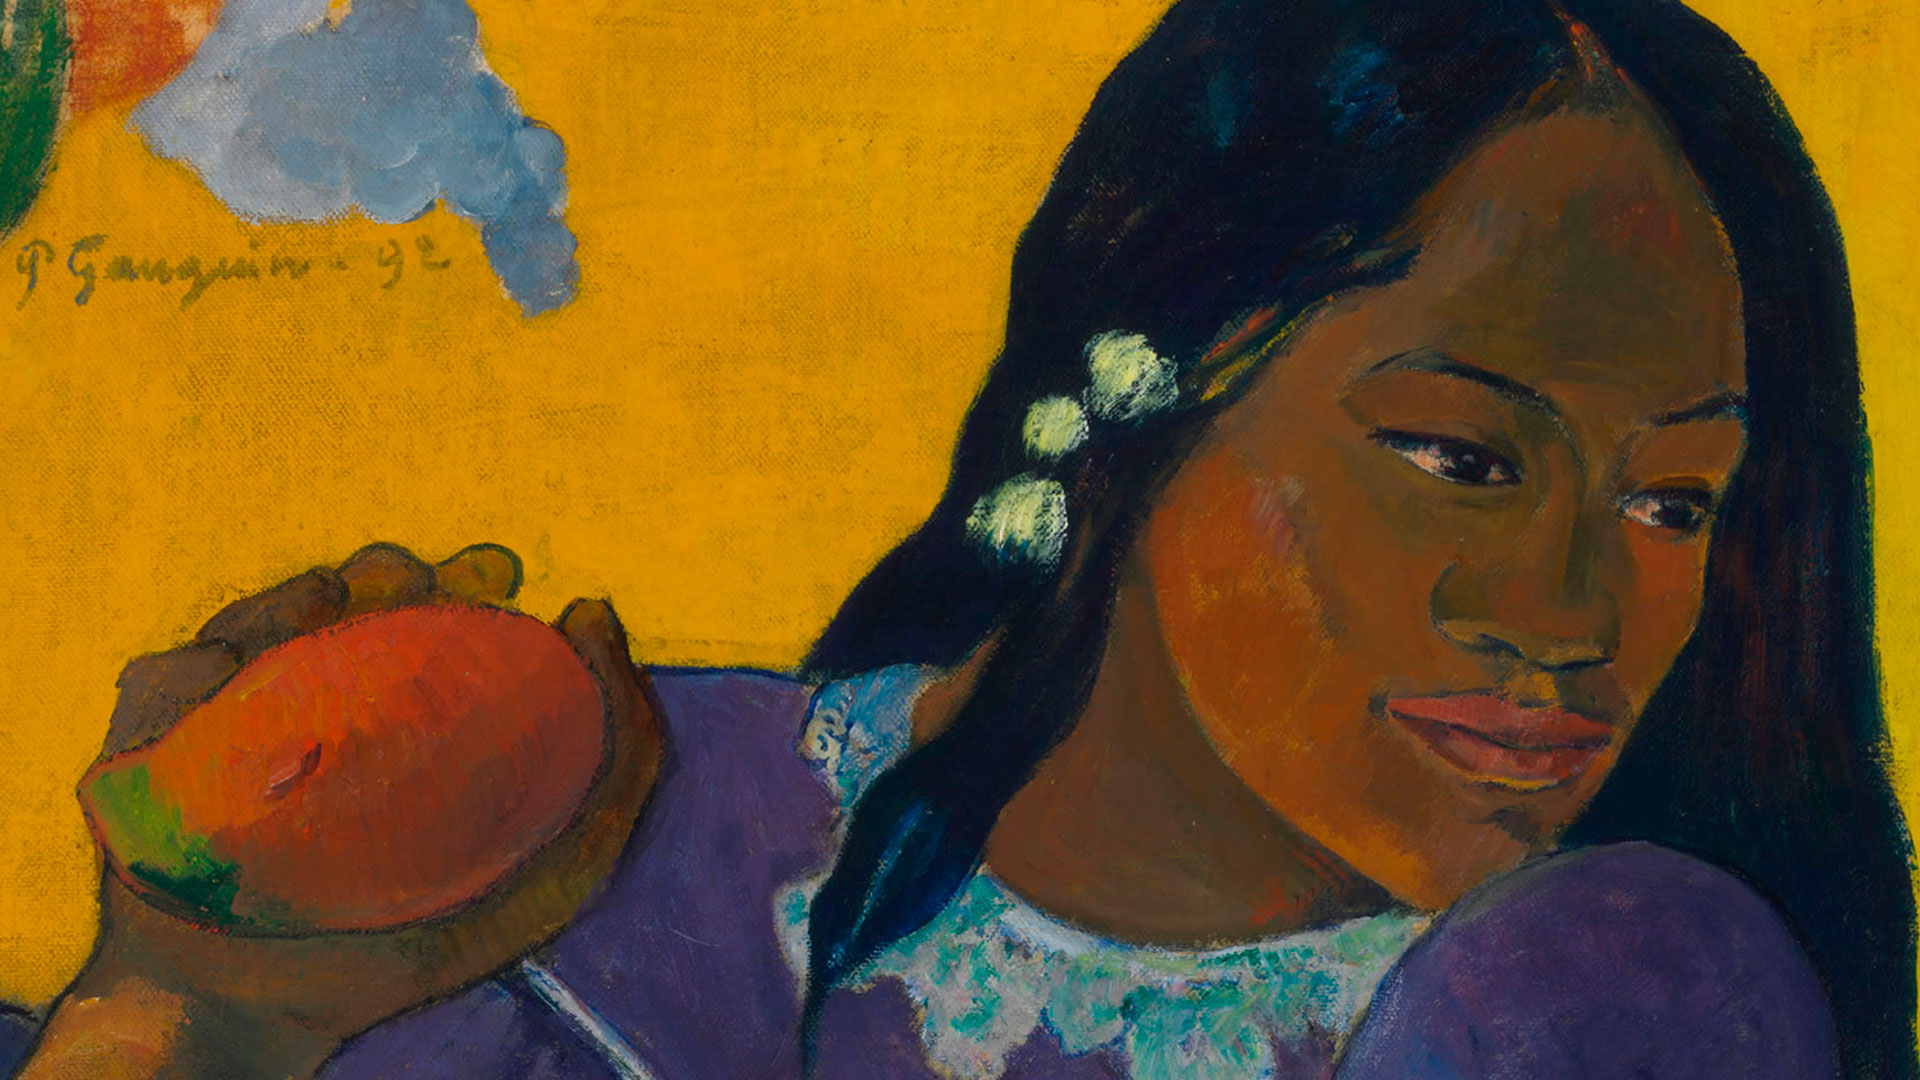 Gauguin Portraits hero asset